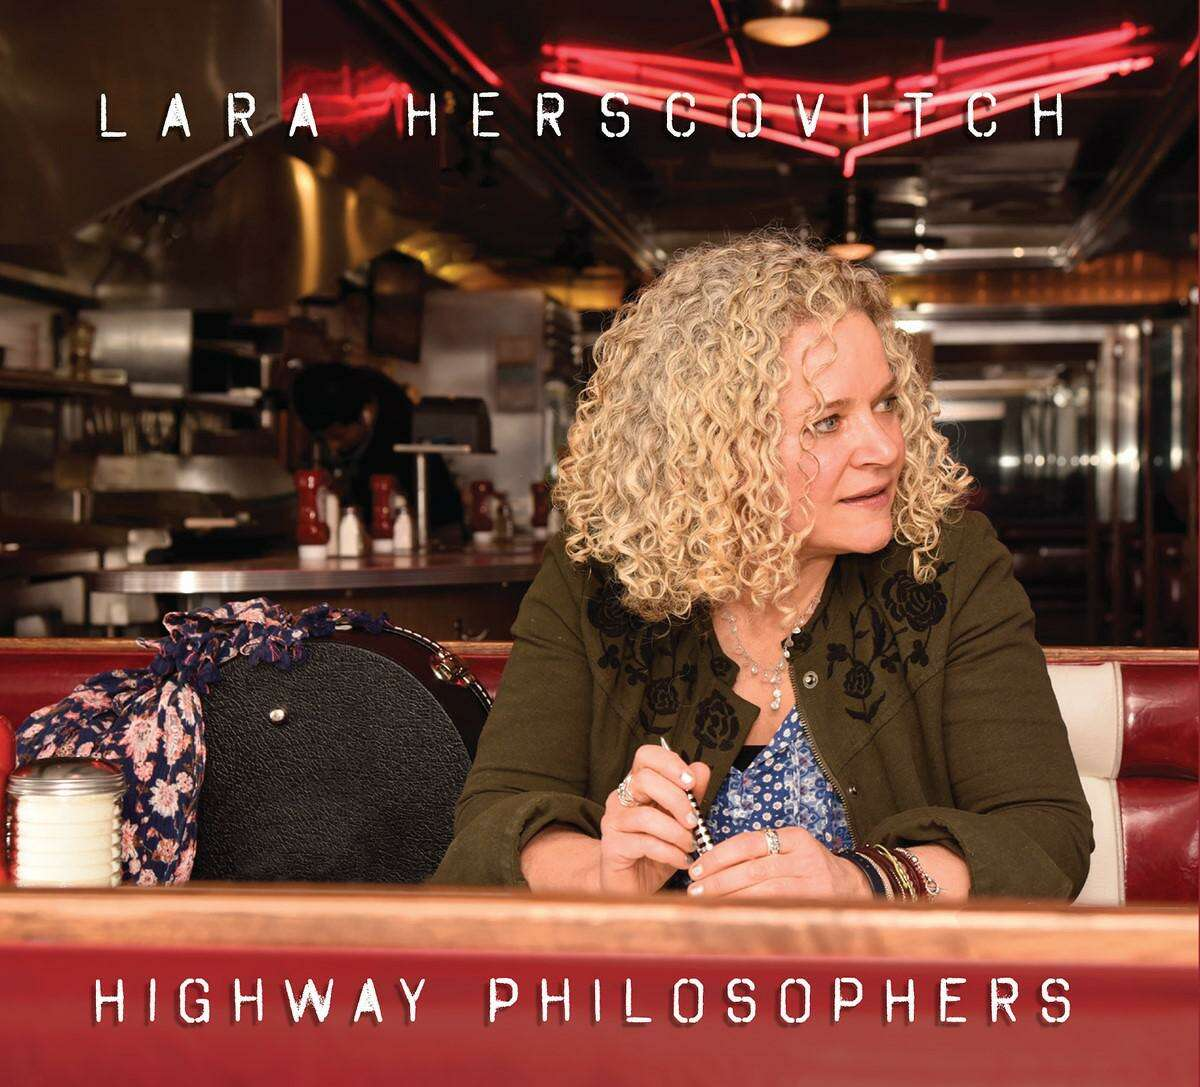 Singer-songwriter and educator Lara Herscovitch, who teaches at Wesleyan University, has released a new album.